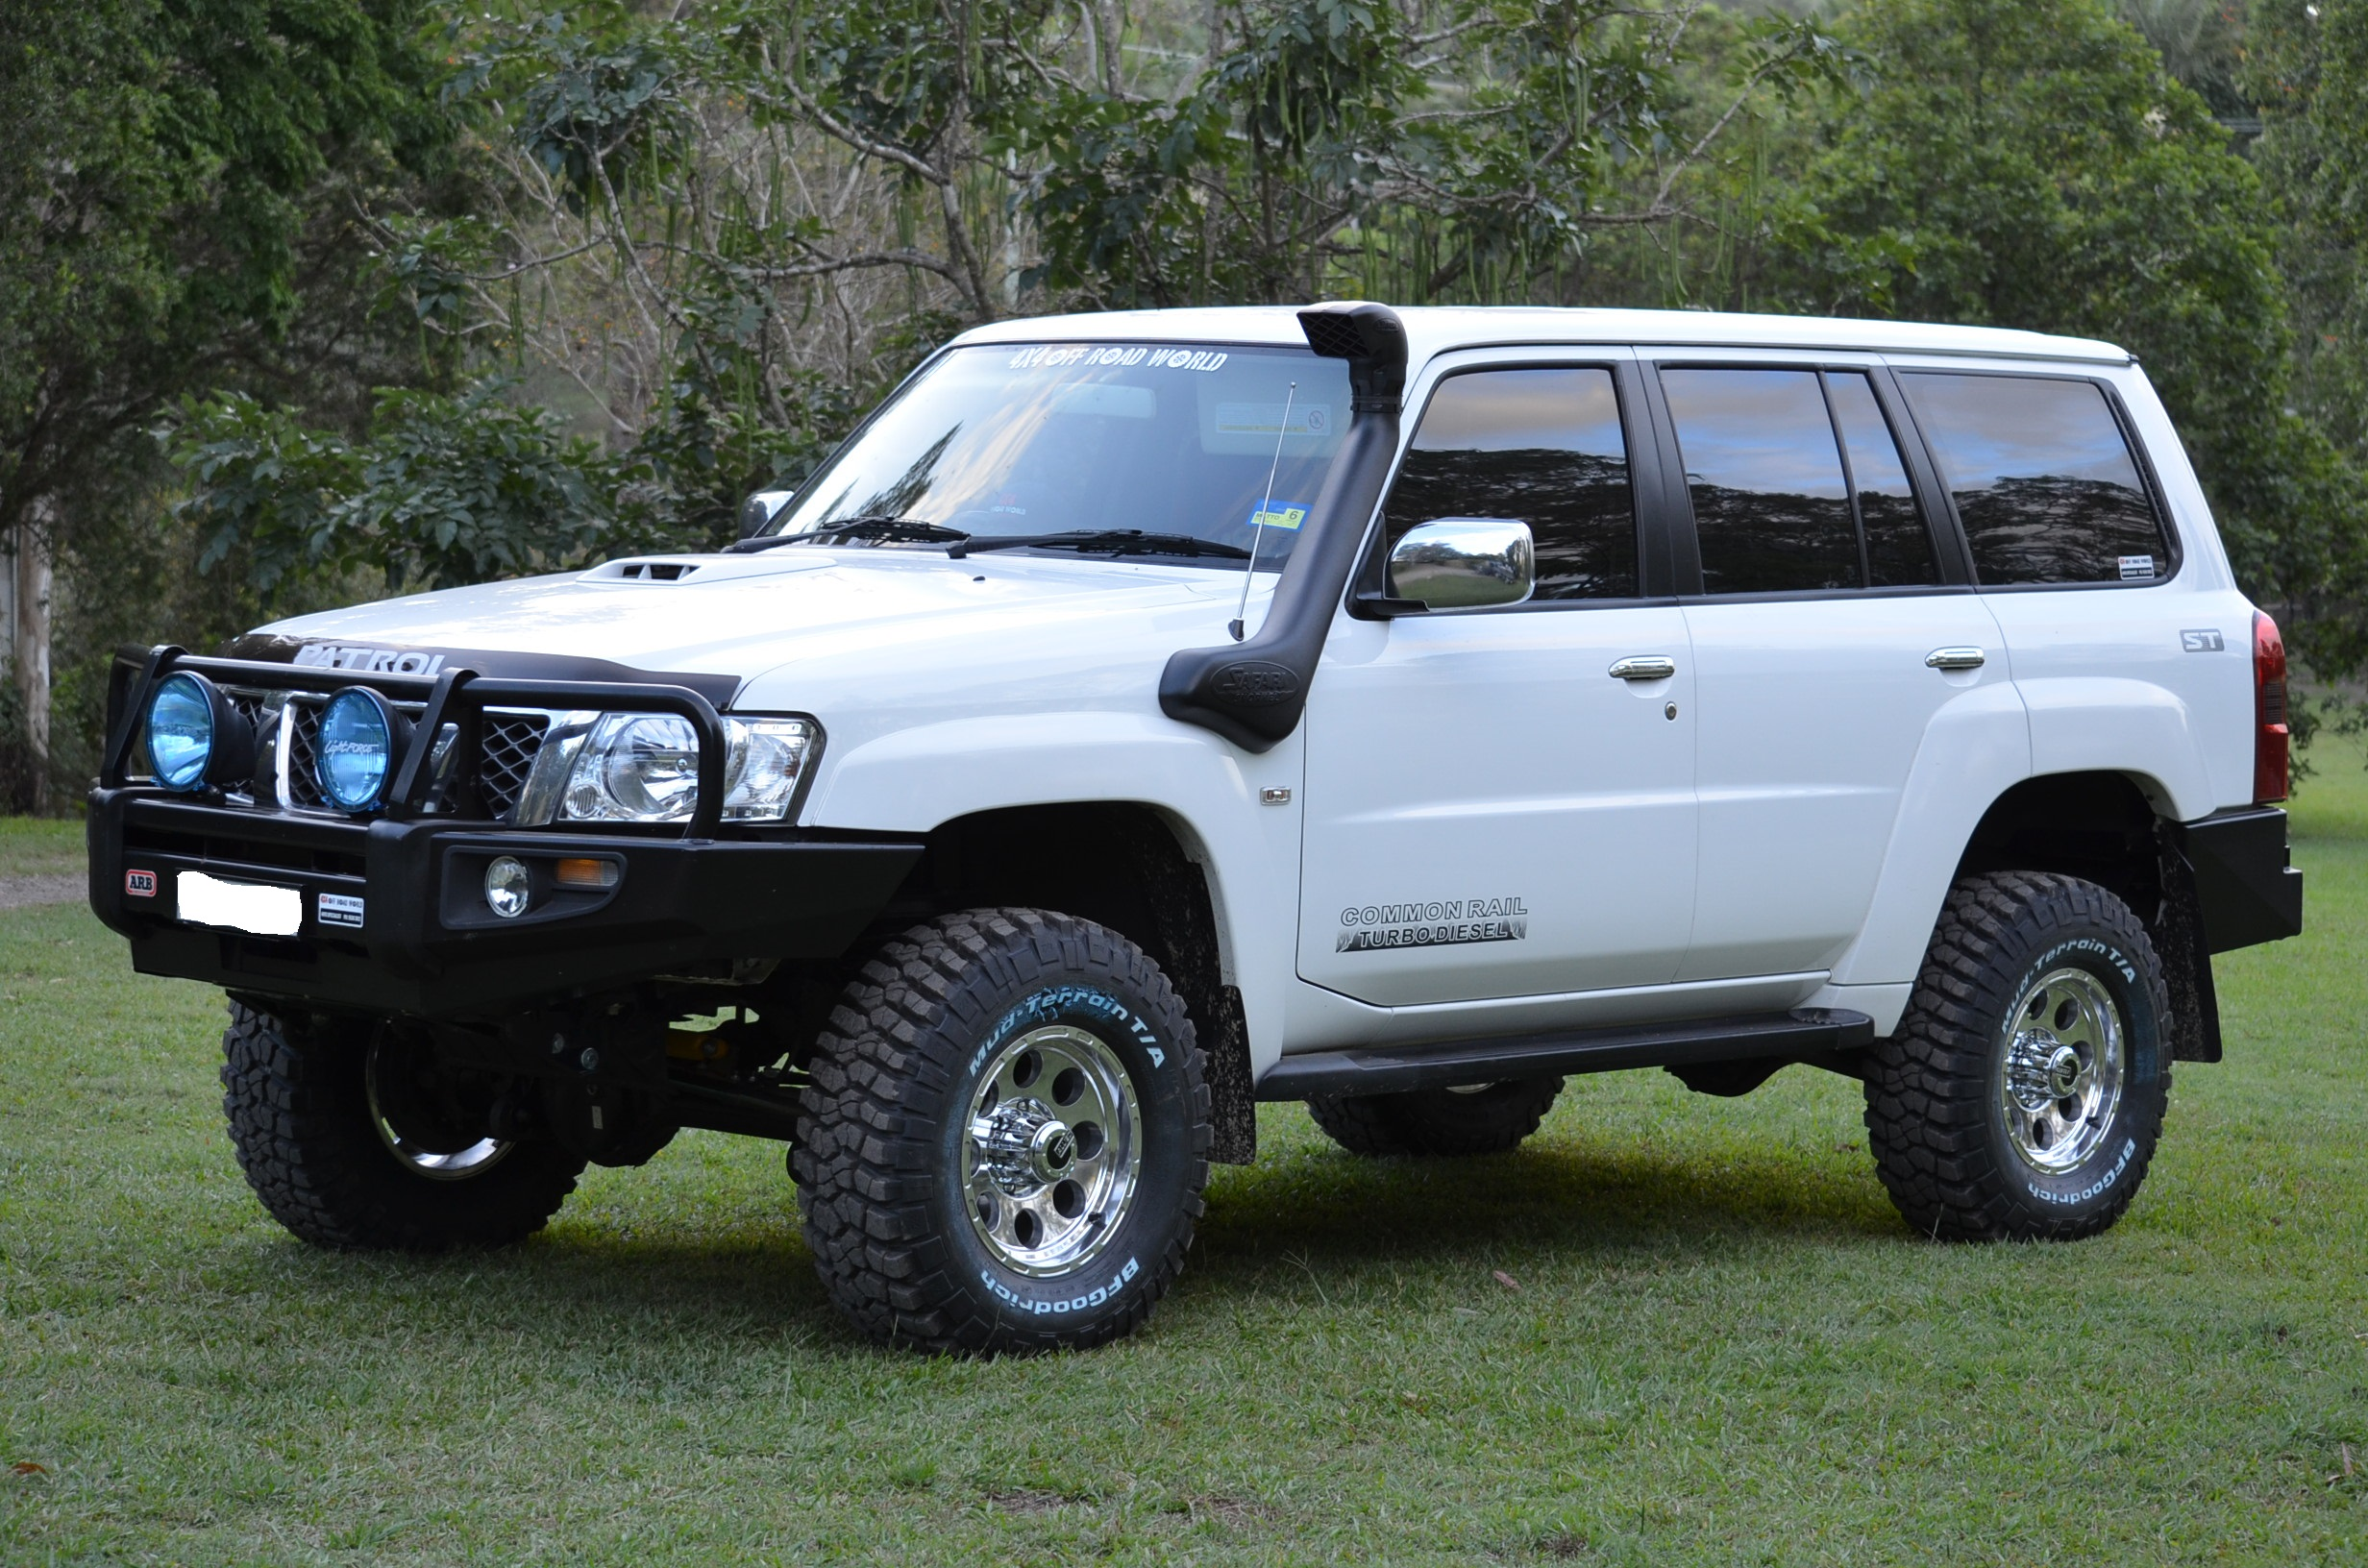 Sportwagen Tdi Review likewise 2014 Toyota F J Cruiser Trail Teams Ultimate  GSJ15W  suv 4x4 f as well 2002 Toyota Ta a Pictures 28770 furthermore Viewtopic as well 1125 L200 Mitsubishi 12. on toyota 4x4 wallpaper